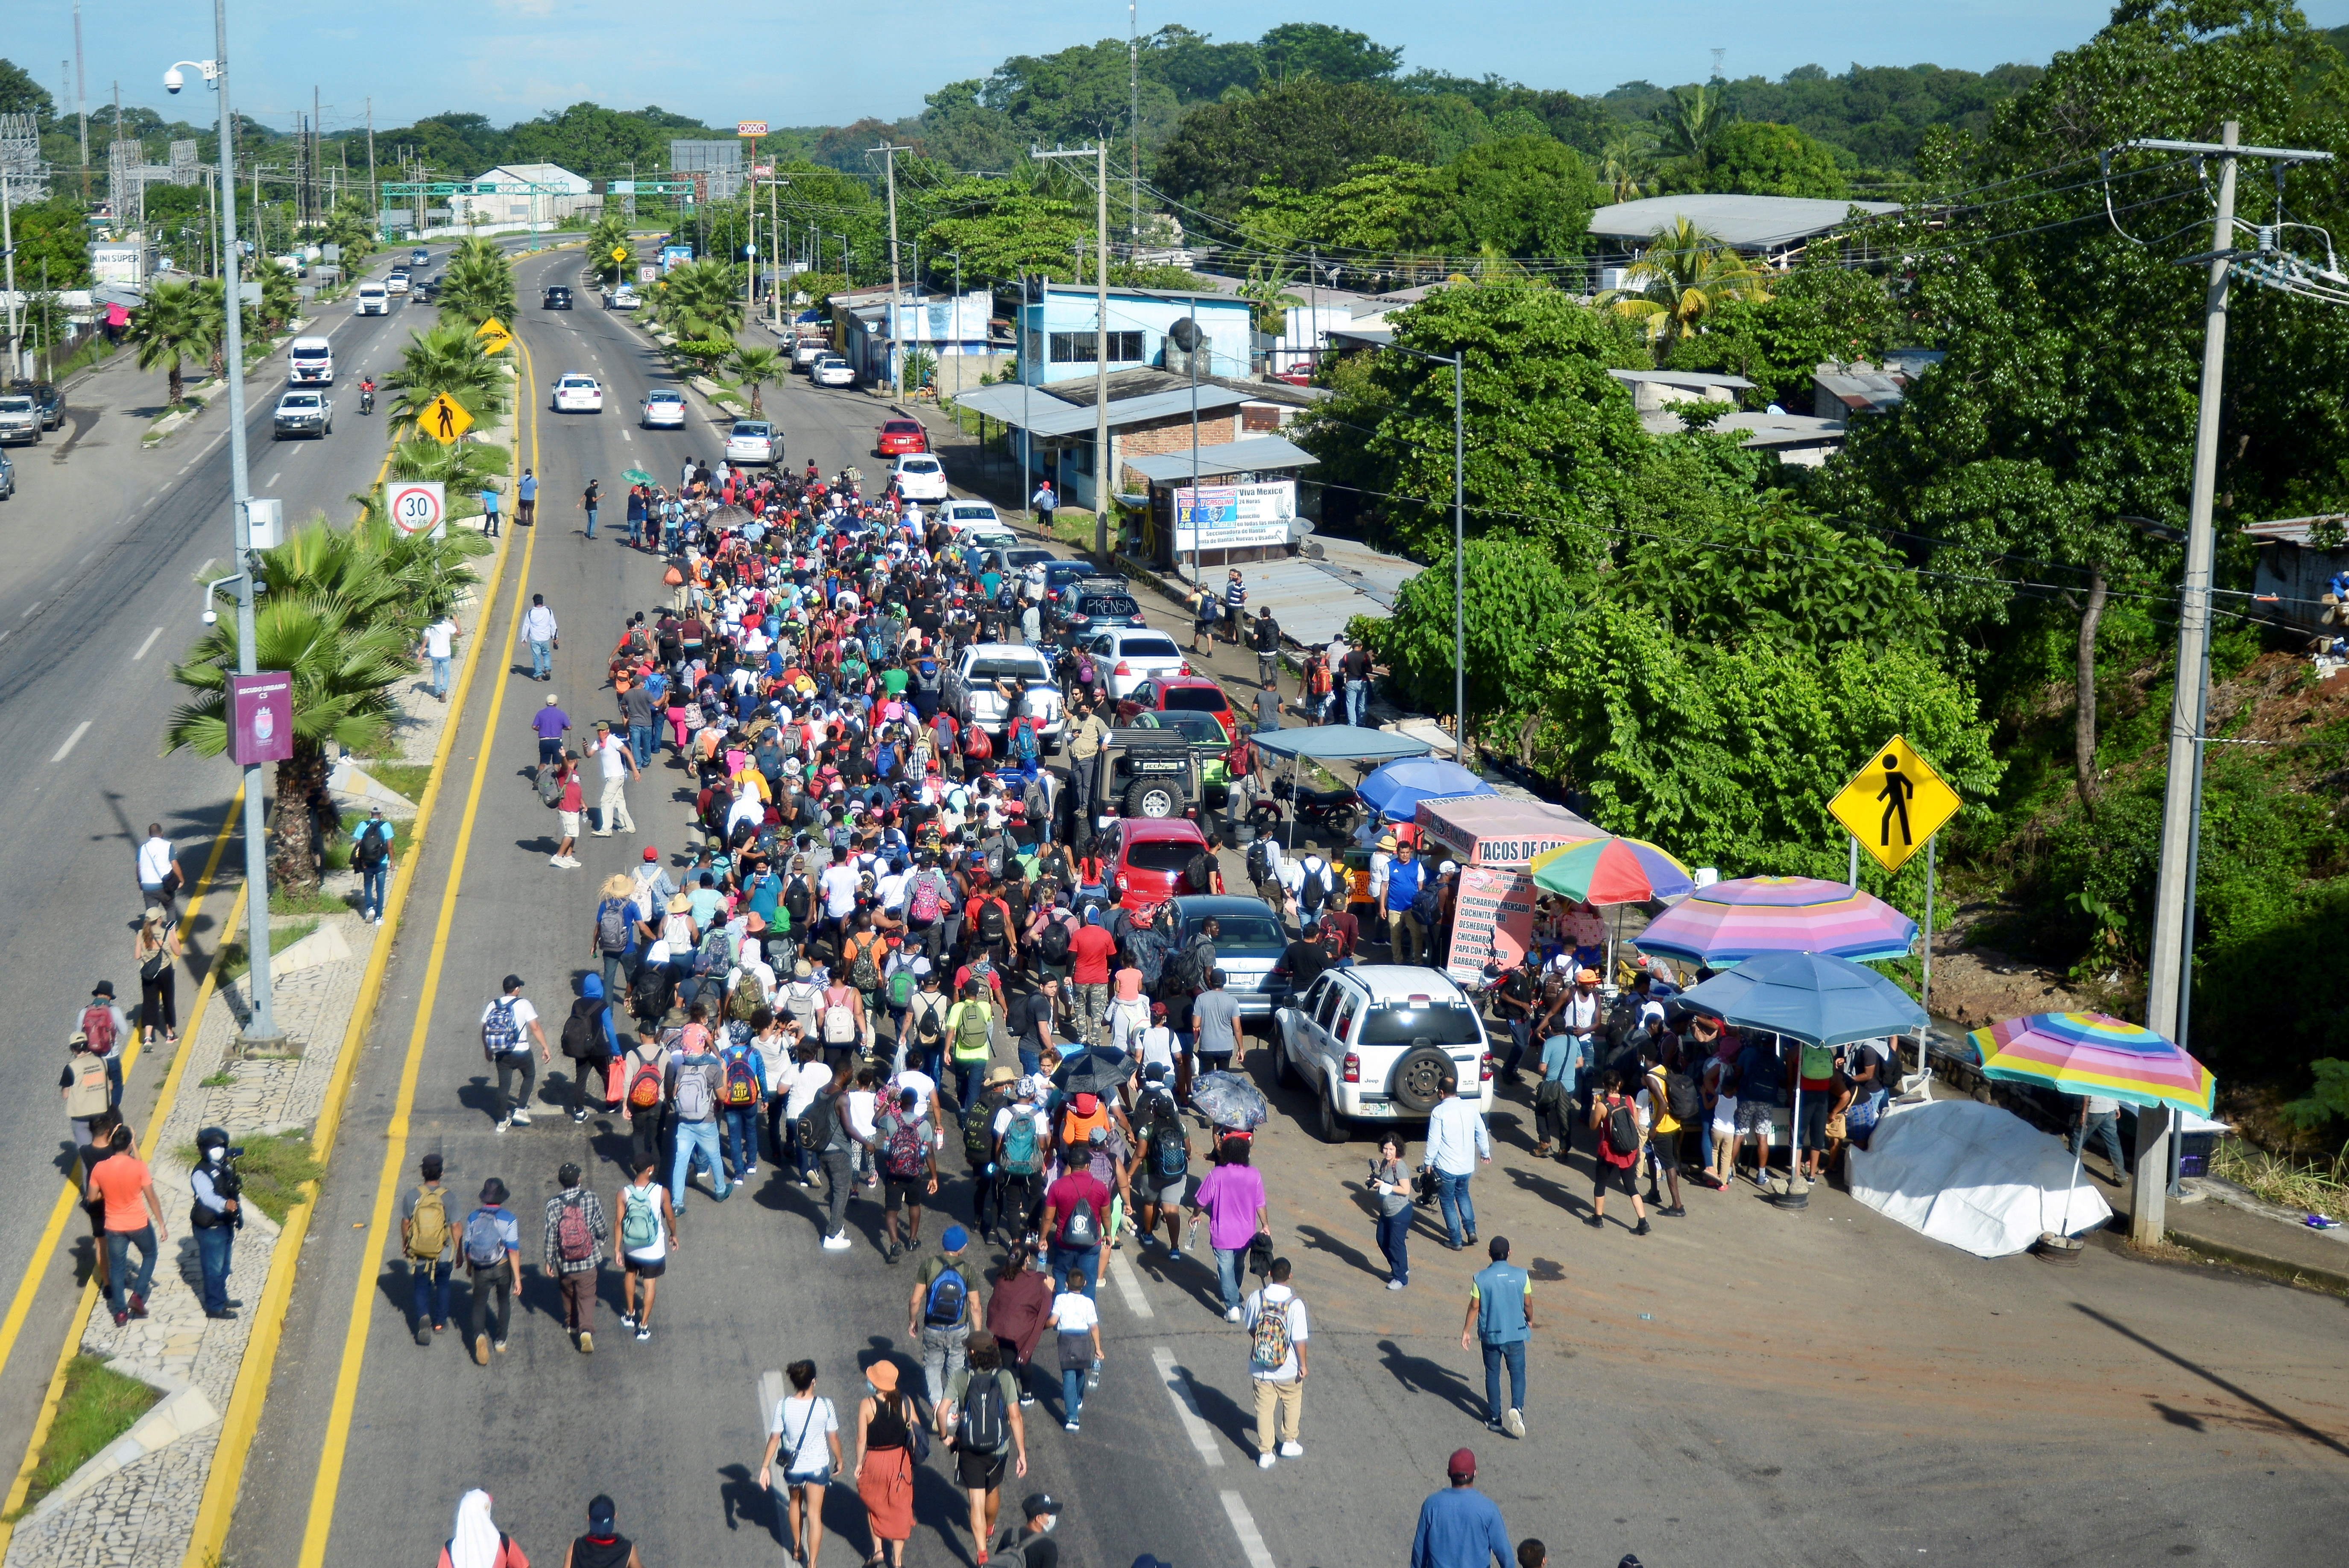 Migrants and asylum seekers from Central America and the Caribbean walk in a caravan heading to the U.S., in Tapachula, Chiapas state, Mexico September 4, 2021. REUTERS/Jacob Garcia